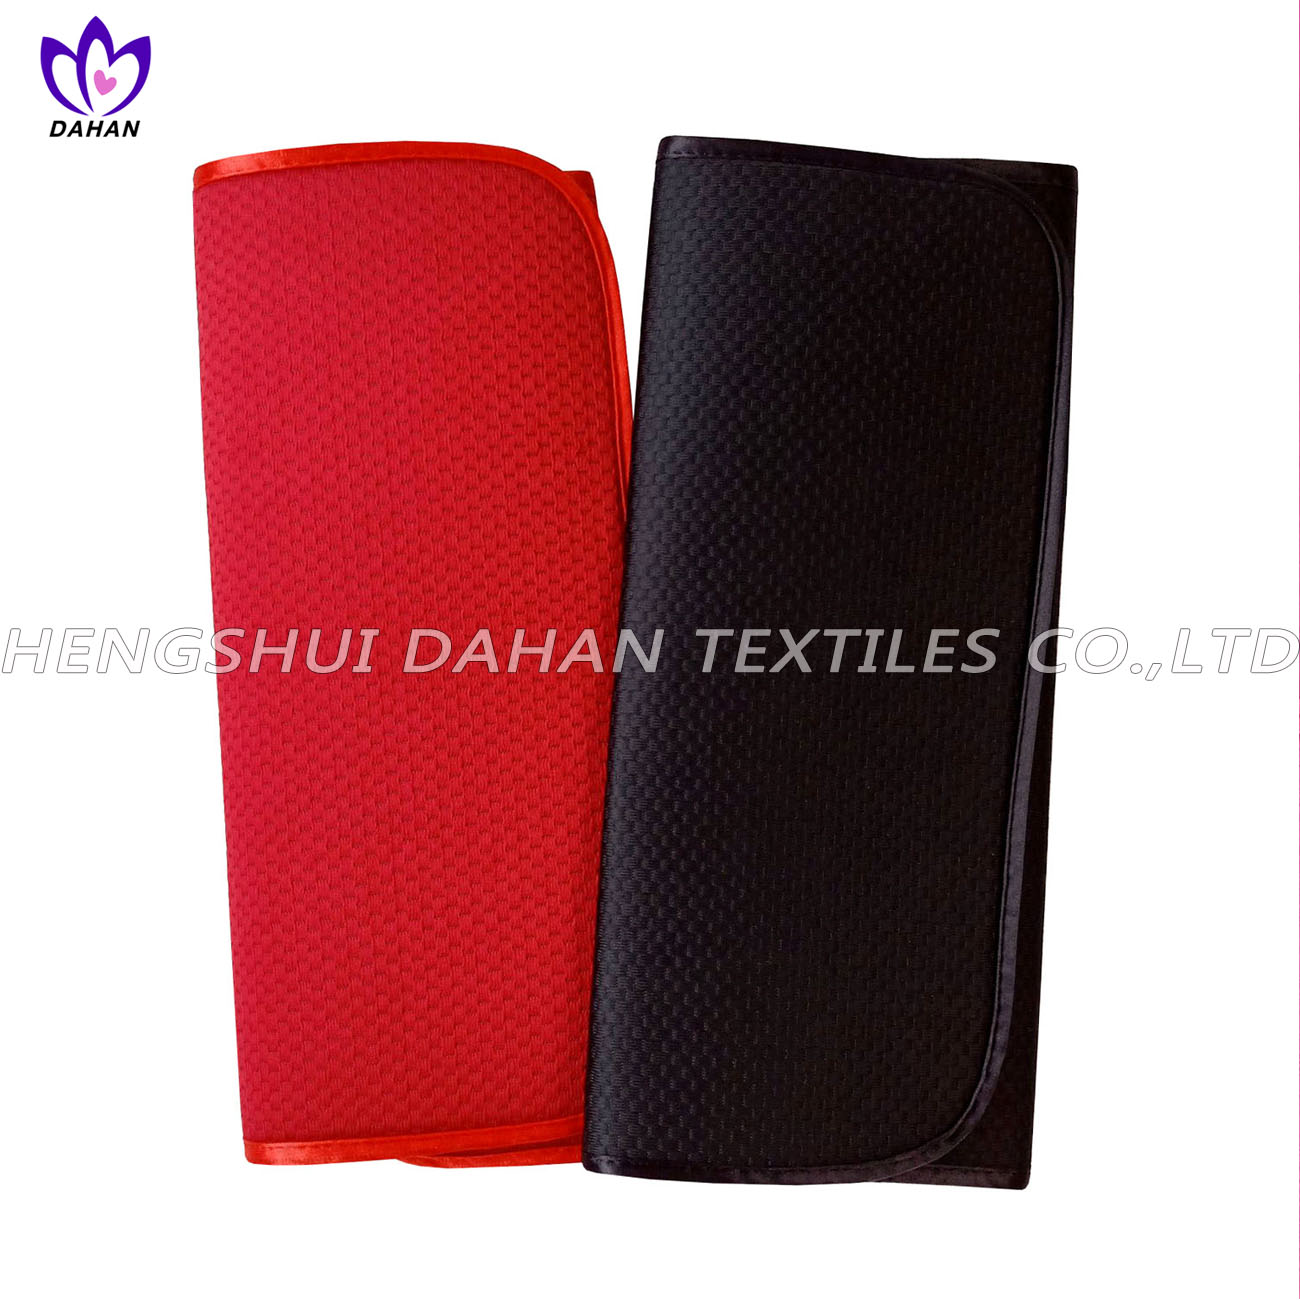 PM11 100%polyester plain colour dish drying mat.